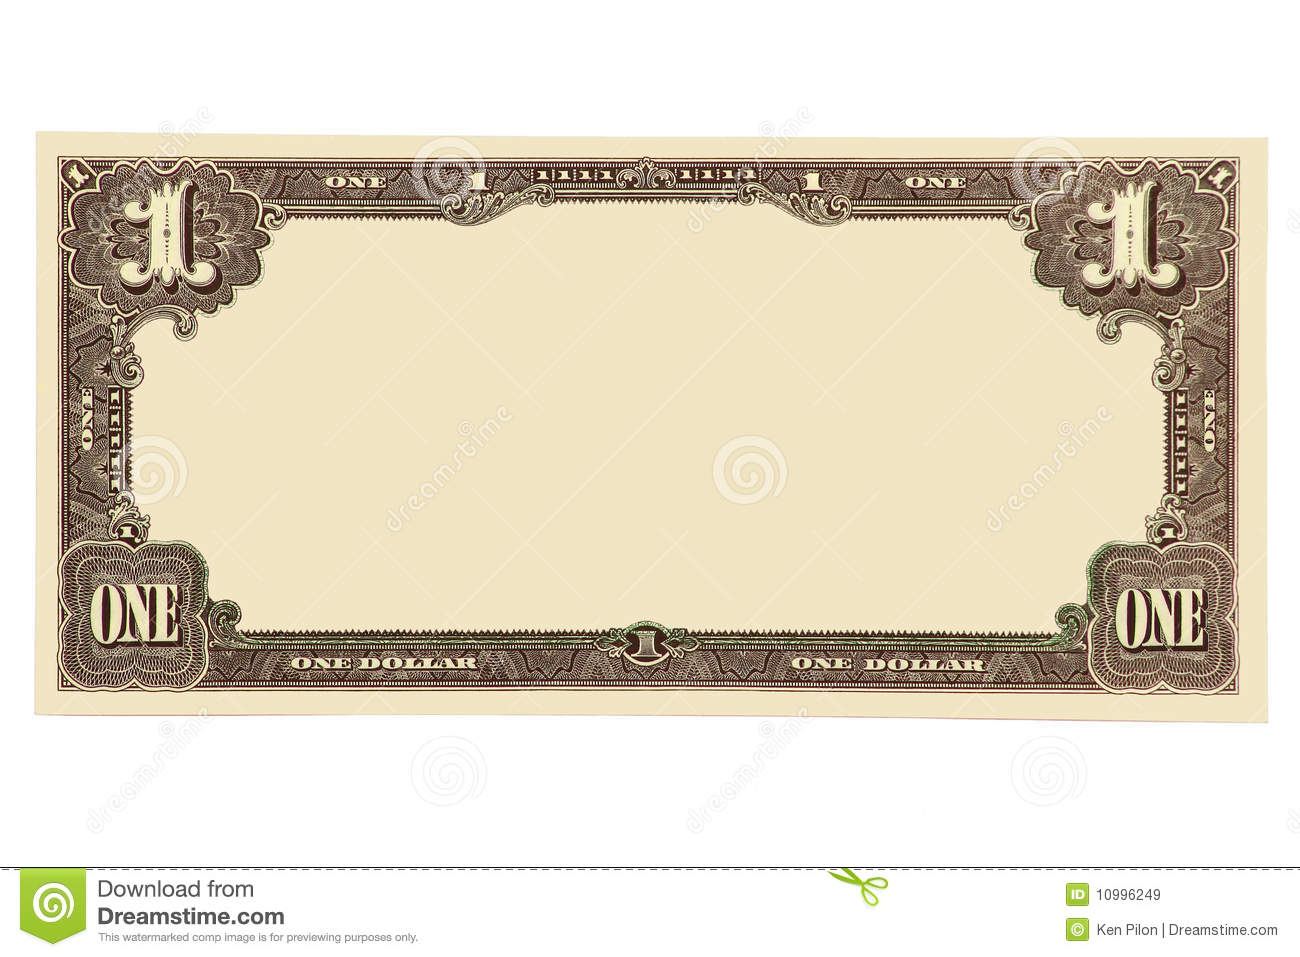 Blanked one dollar banknote with copy space.